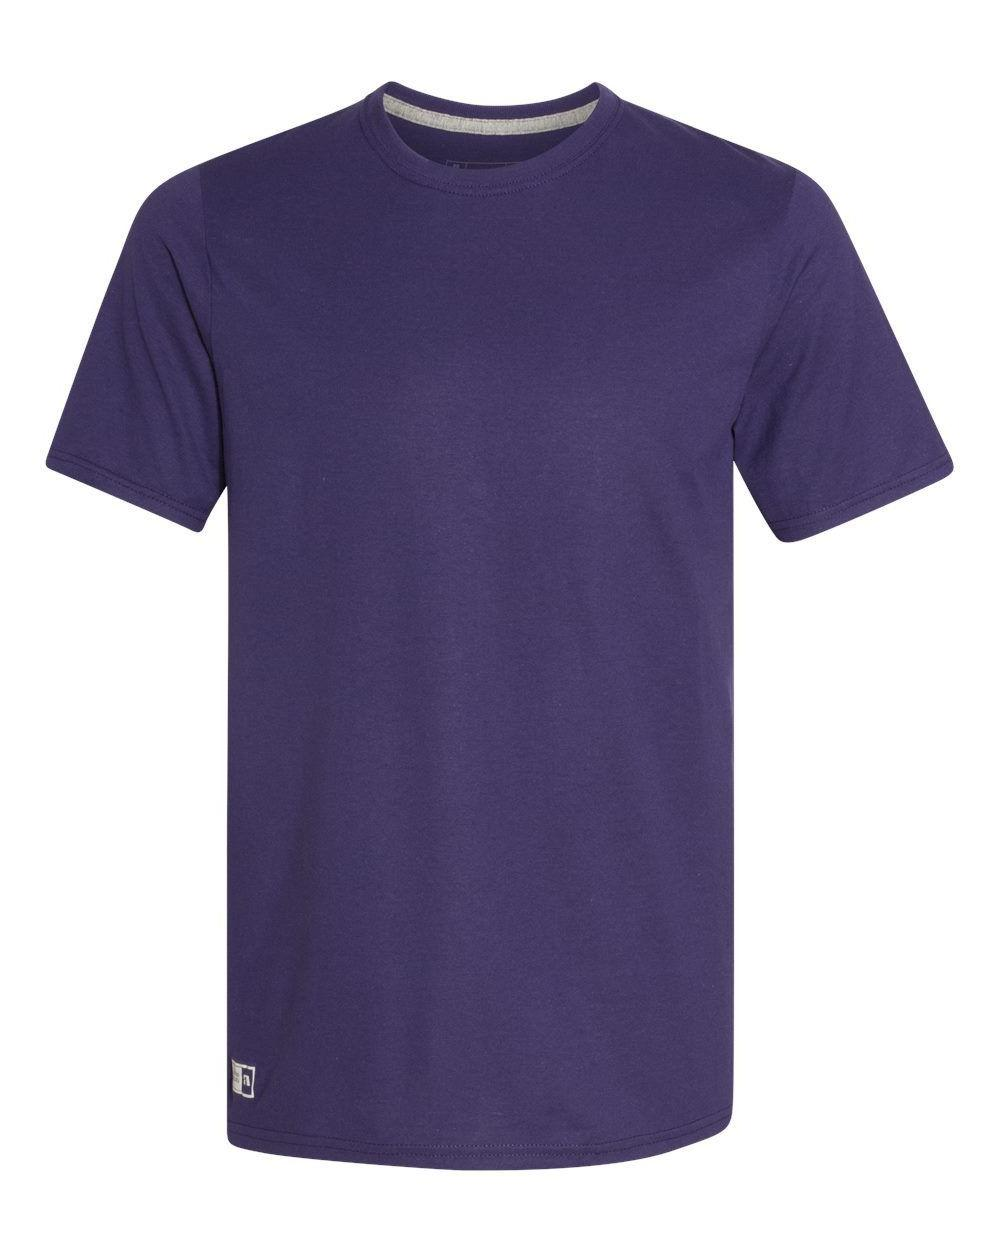 Russell Essential Sports T-Shirt,